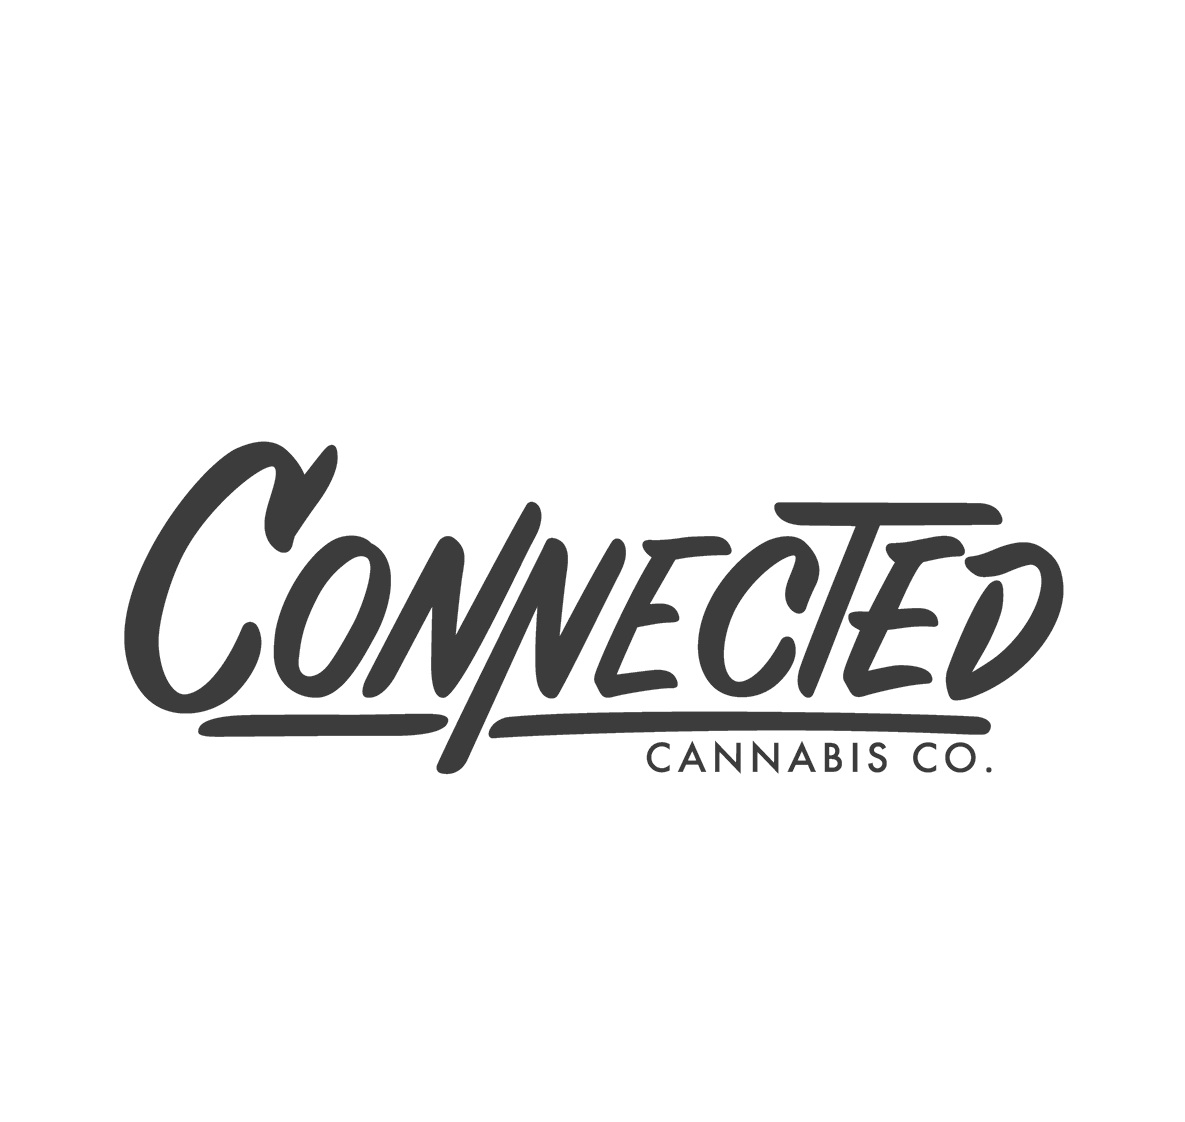 connected-logo-02+%281%29.jpg